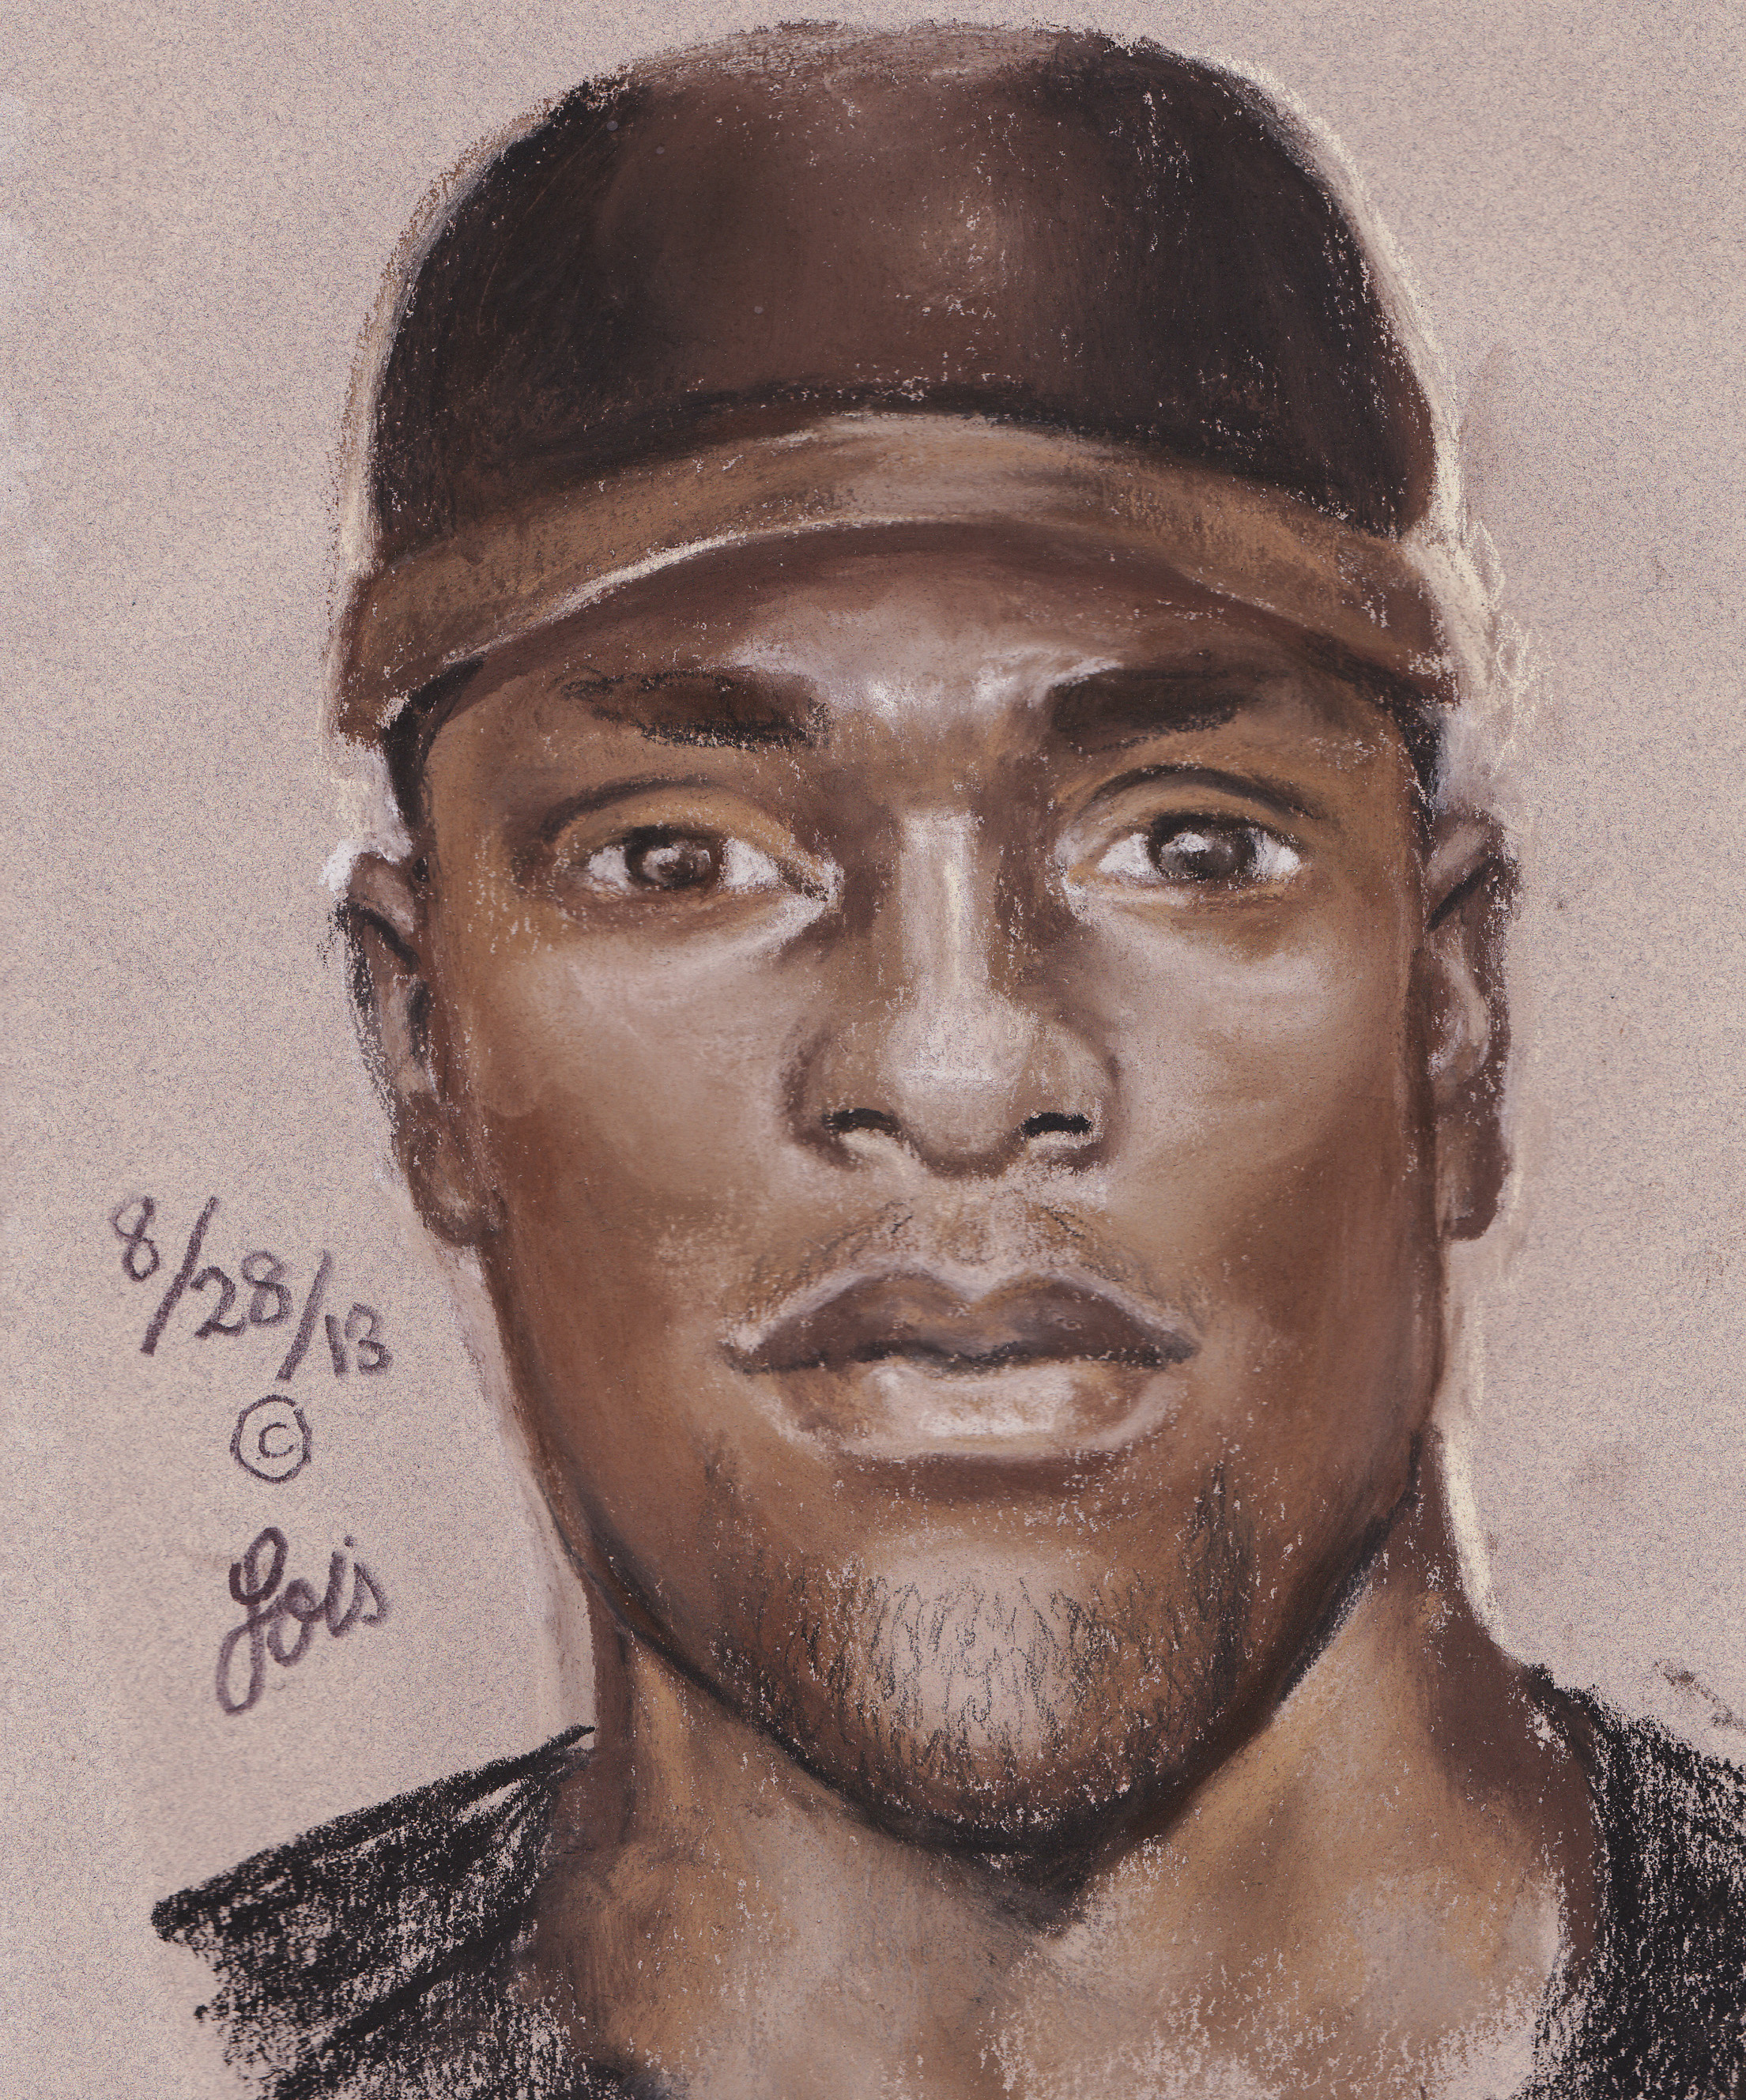 Sketch in Armored Car Robbery (9/3/13)